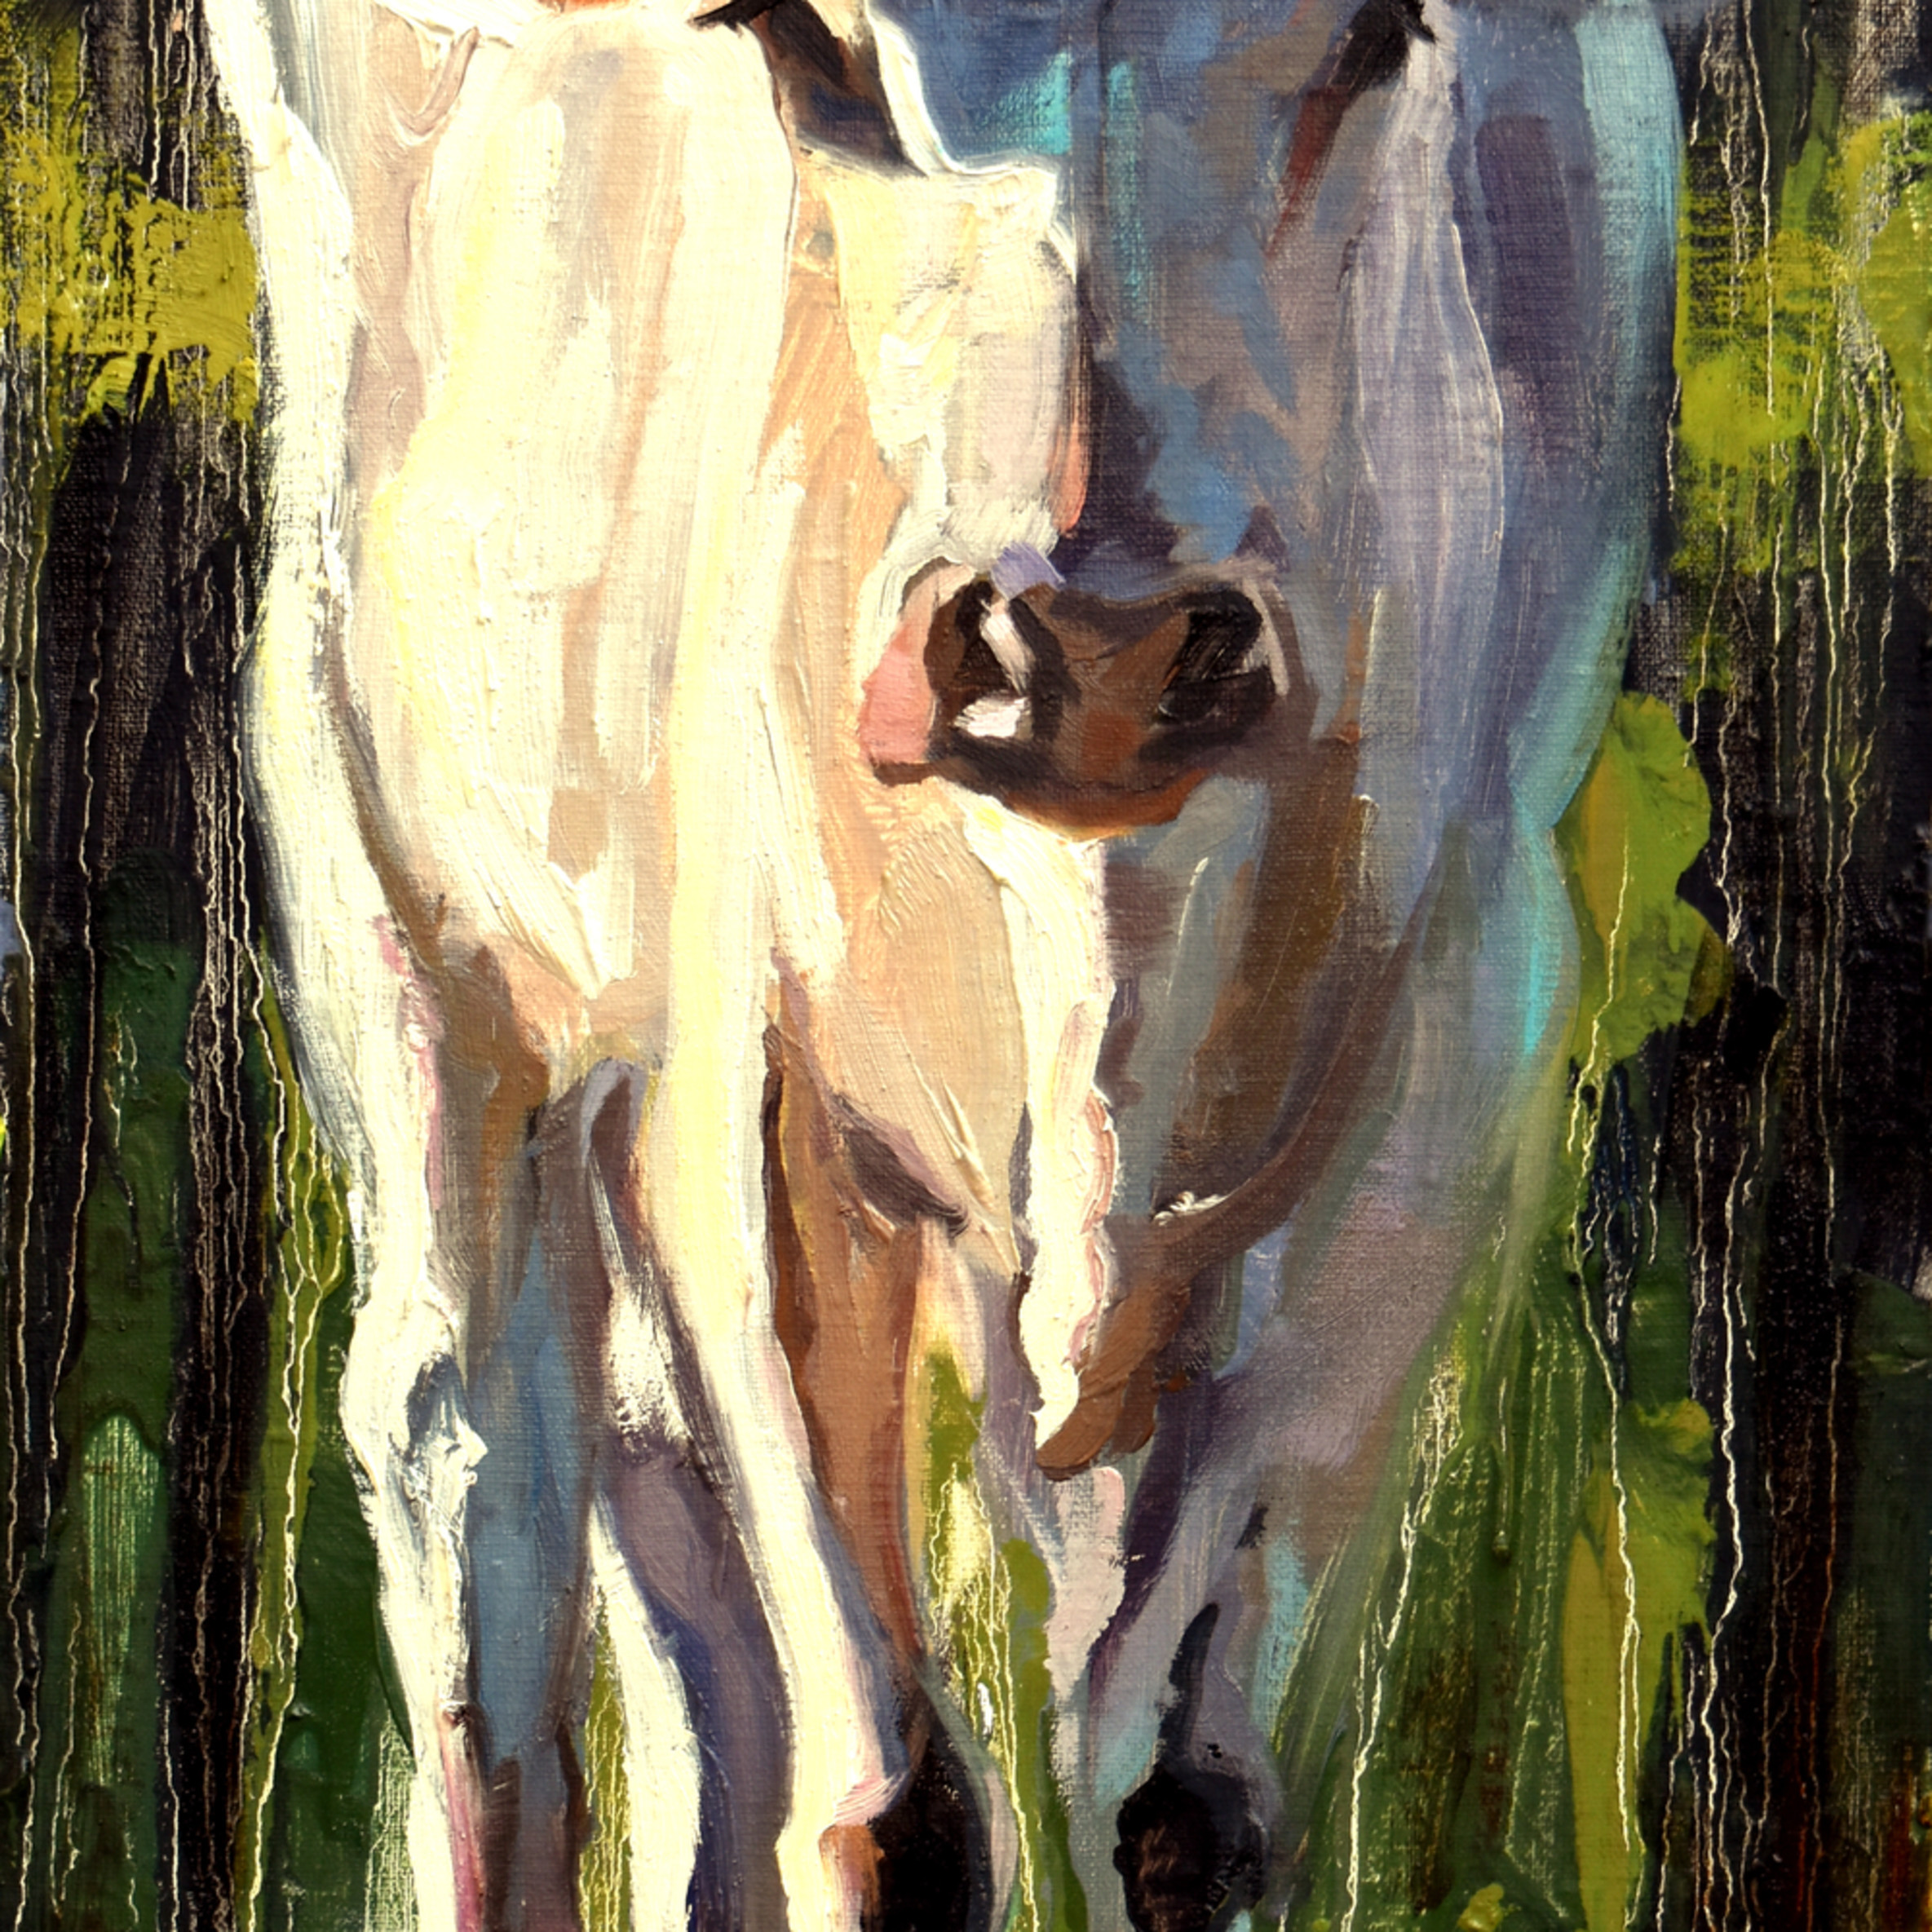 Bull calf 10x20 oil 2020 qhxth1